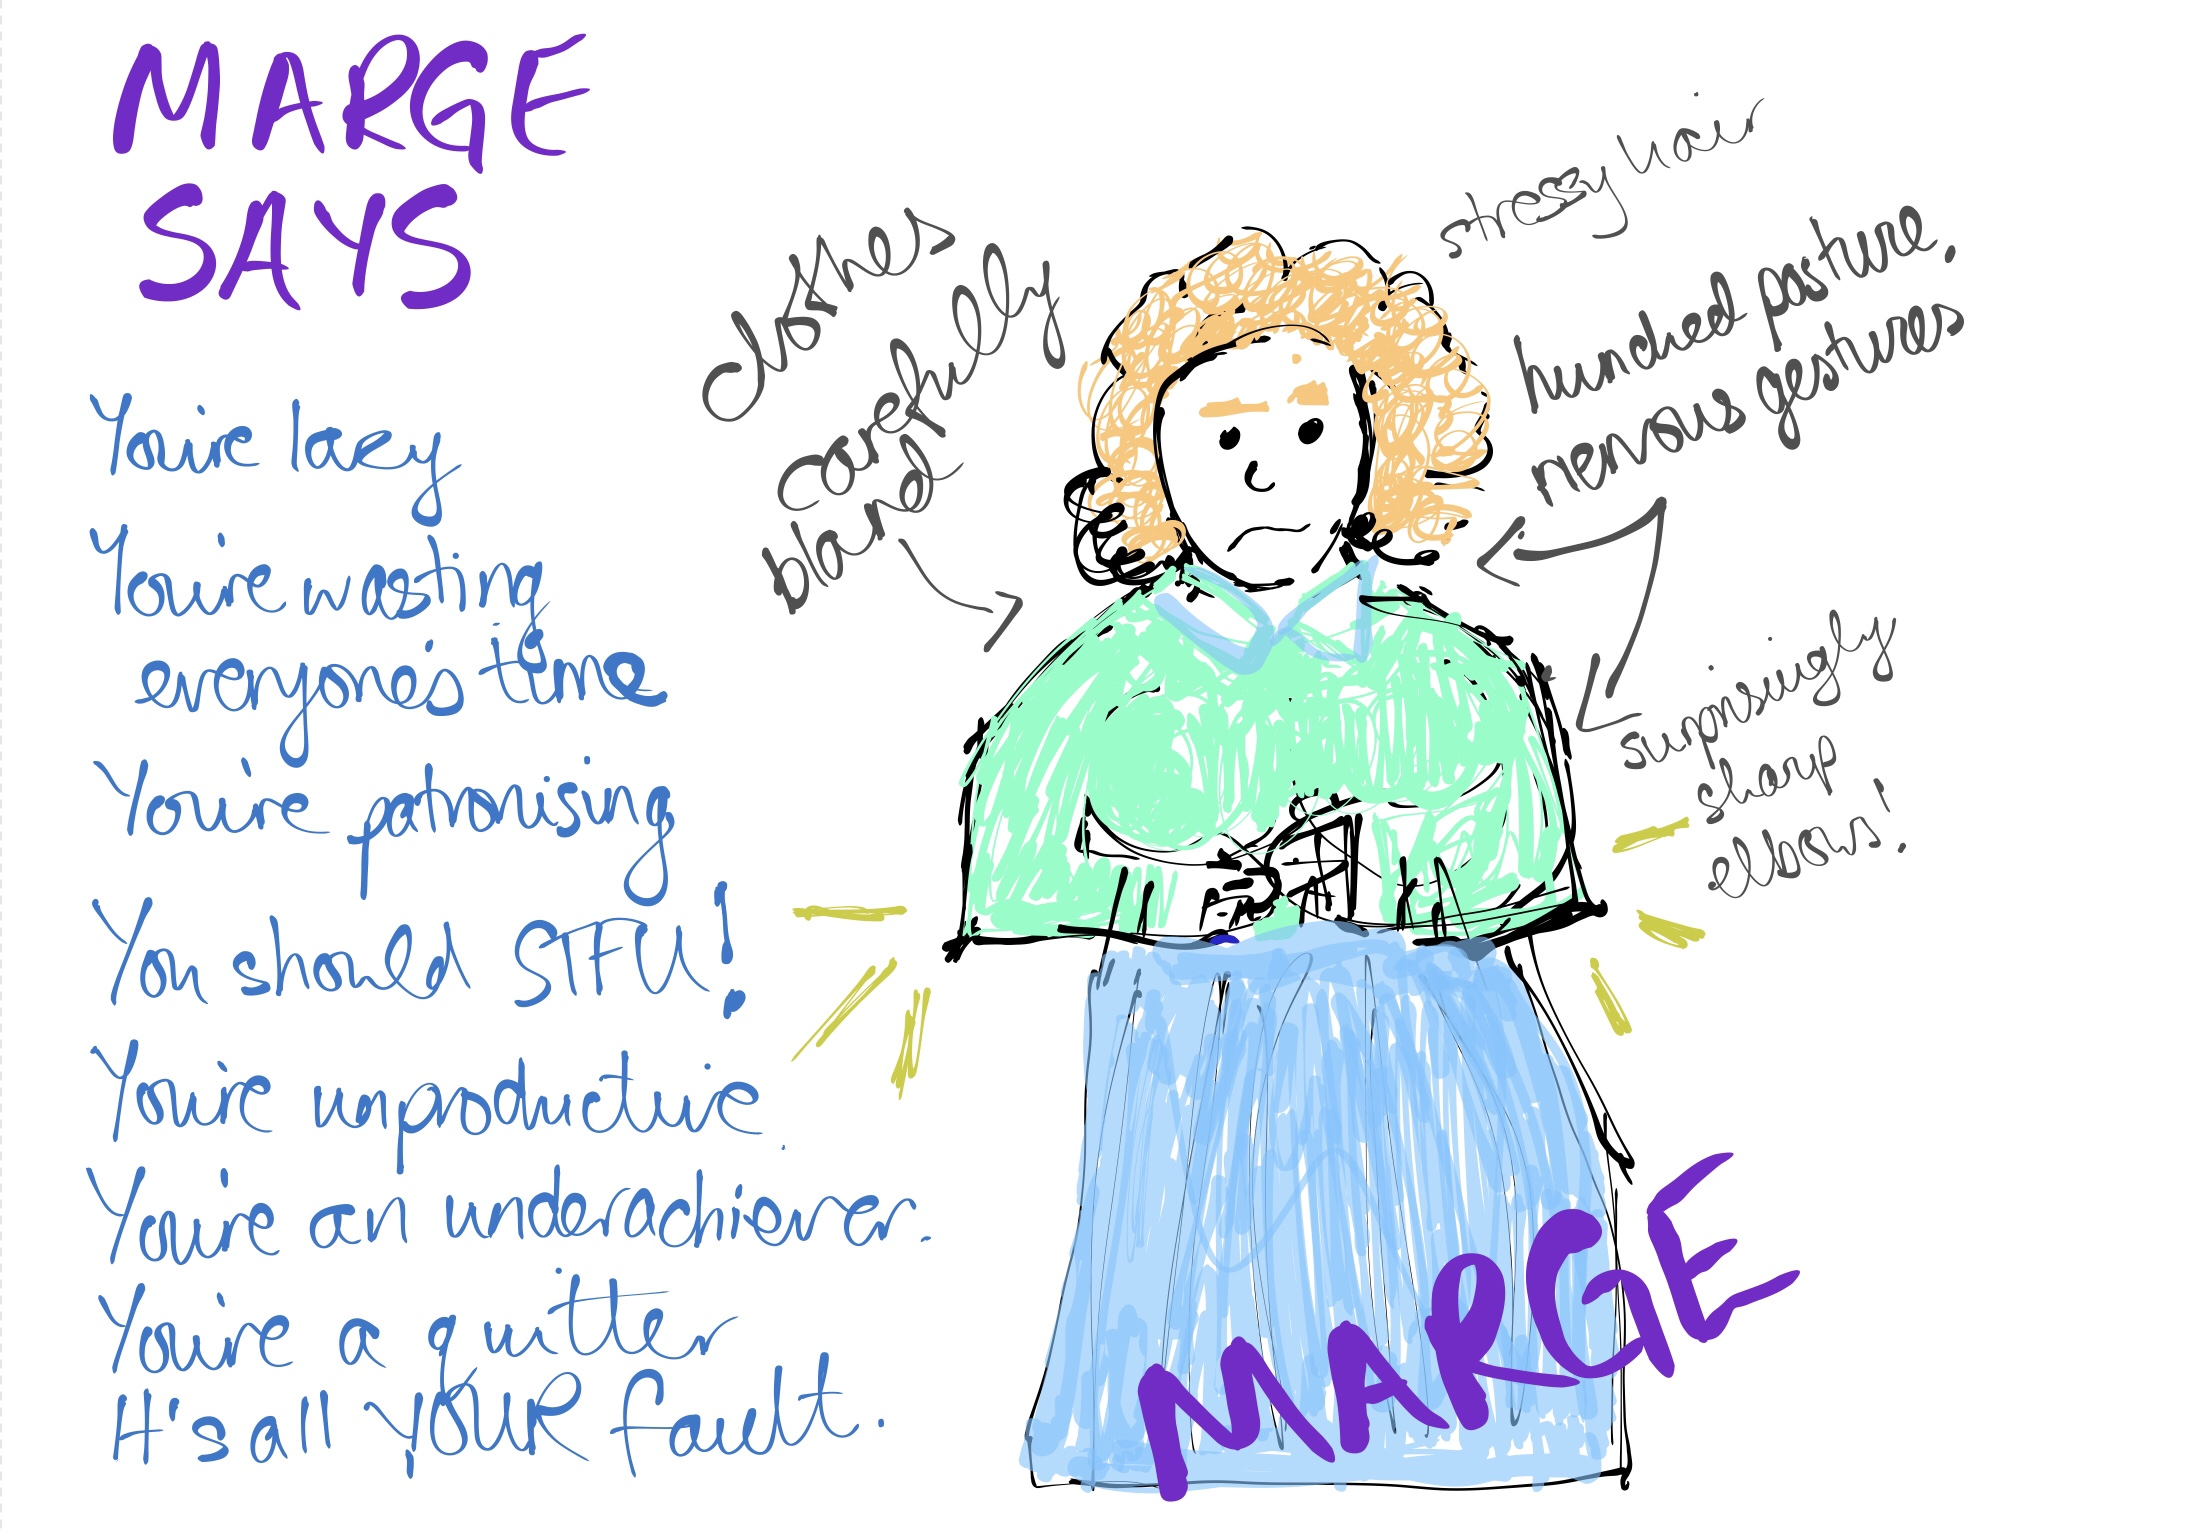 A very bad felt-tip pen drawing of a white woman with pale orange messy hair, a pastel green shirt and an unflattering calf-length pastel blue skirt. She is wringing her hands nervously. To the left, a caption reads 'MARGE SAYS- You're lazy! You're patronising! You should STFU! You're a quitter! You're wasting everyone's time! You're unproductive! You're an underachiever! It's ALL YOUR FAULT!'